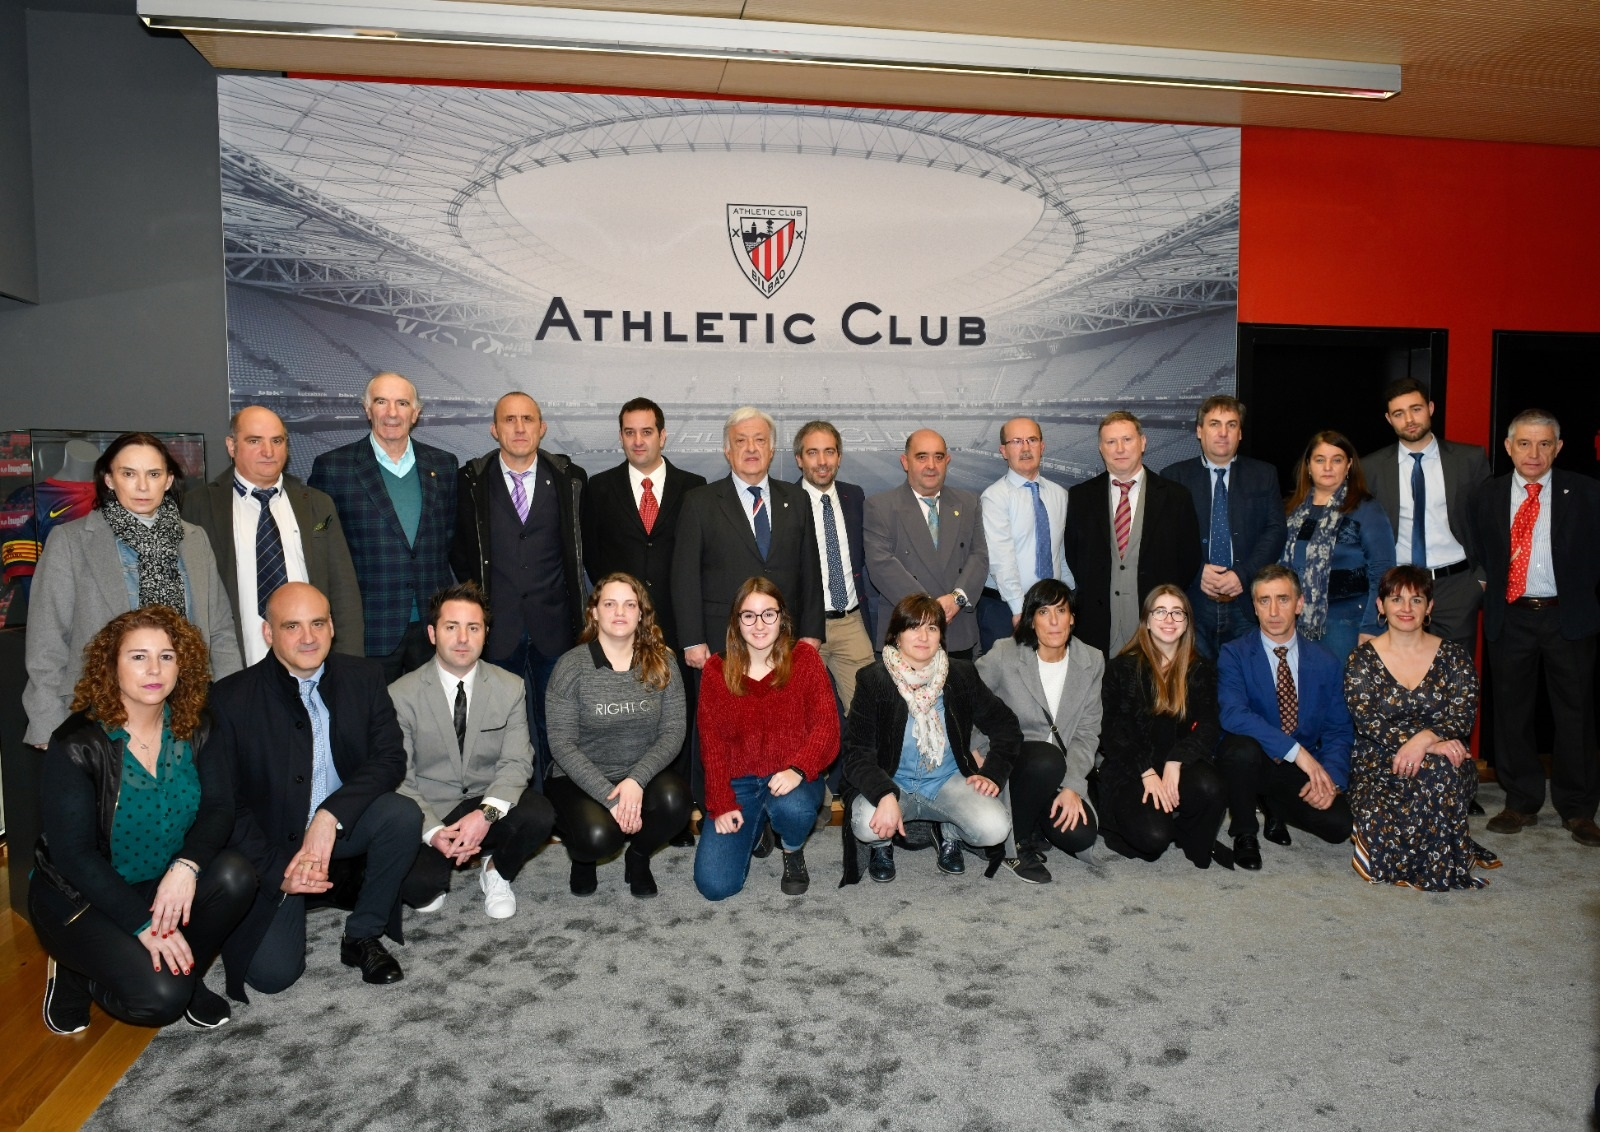 36 women clubs will be Athletic's convened until 2023